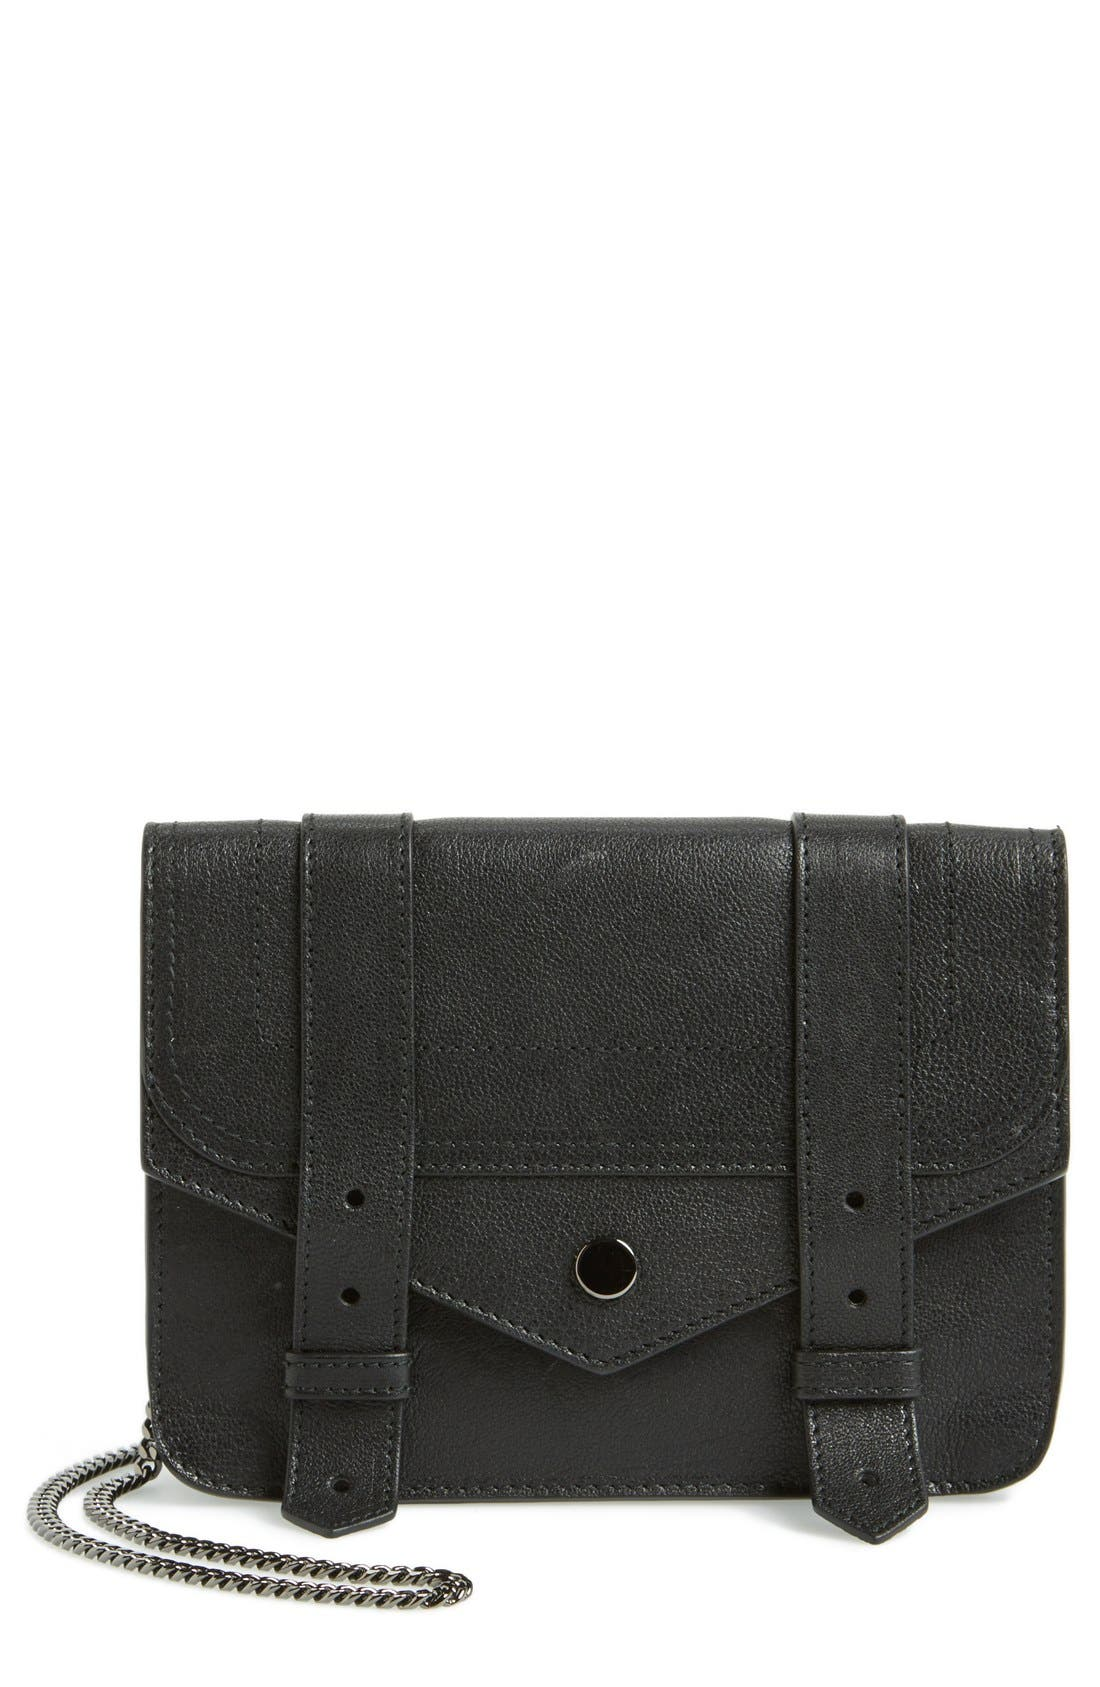 Alternate Image 1 Selected - Proenza Schouler 'Large PS1' Leather Crossbody Wallet